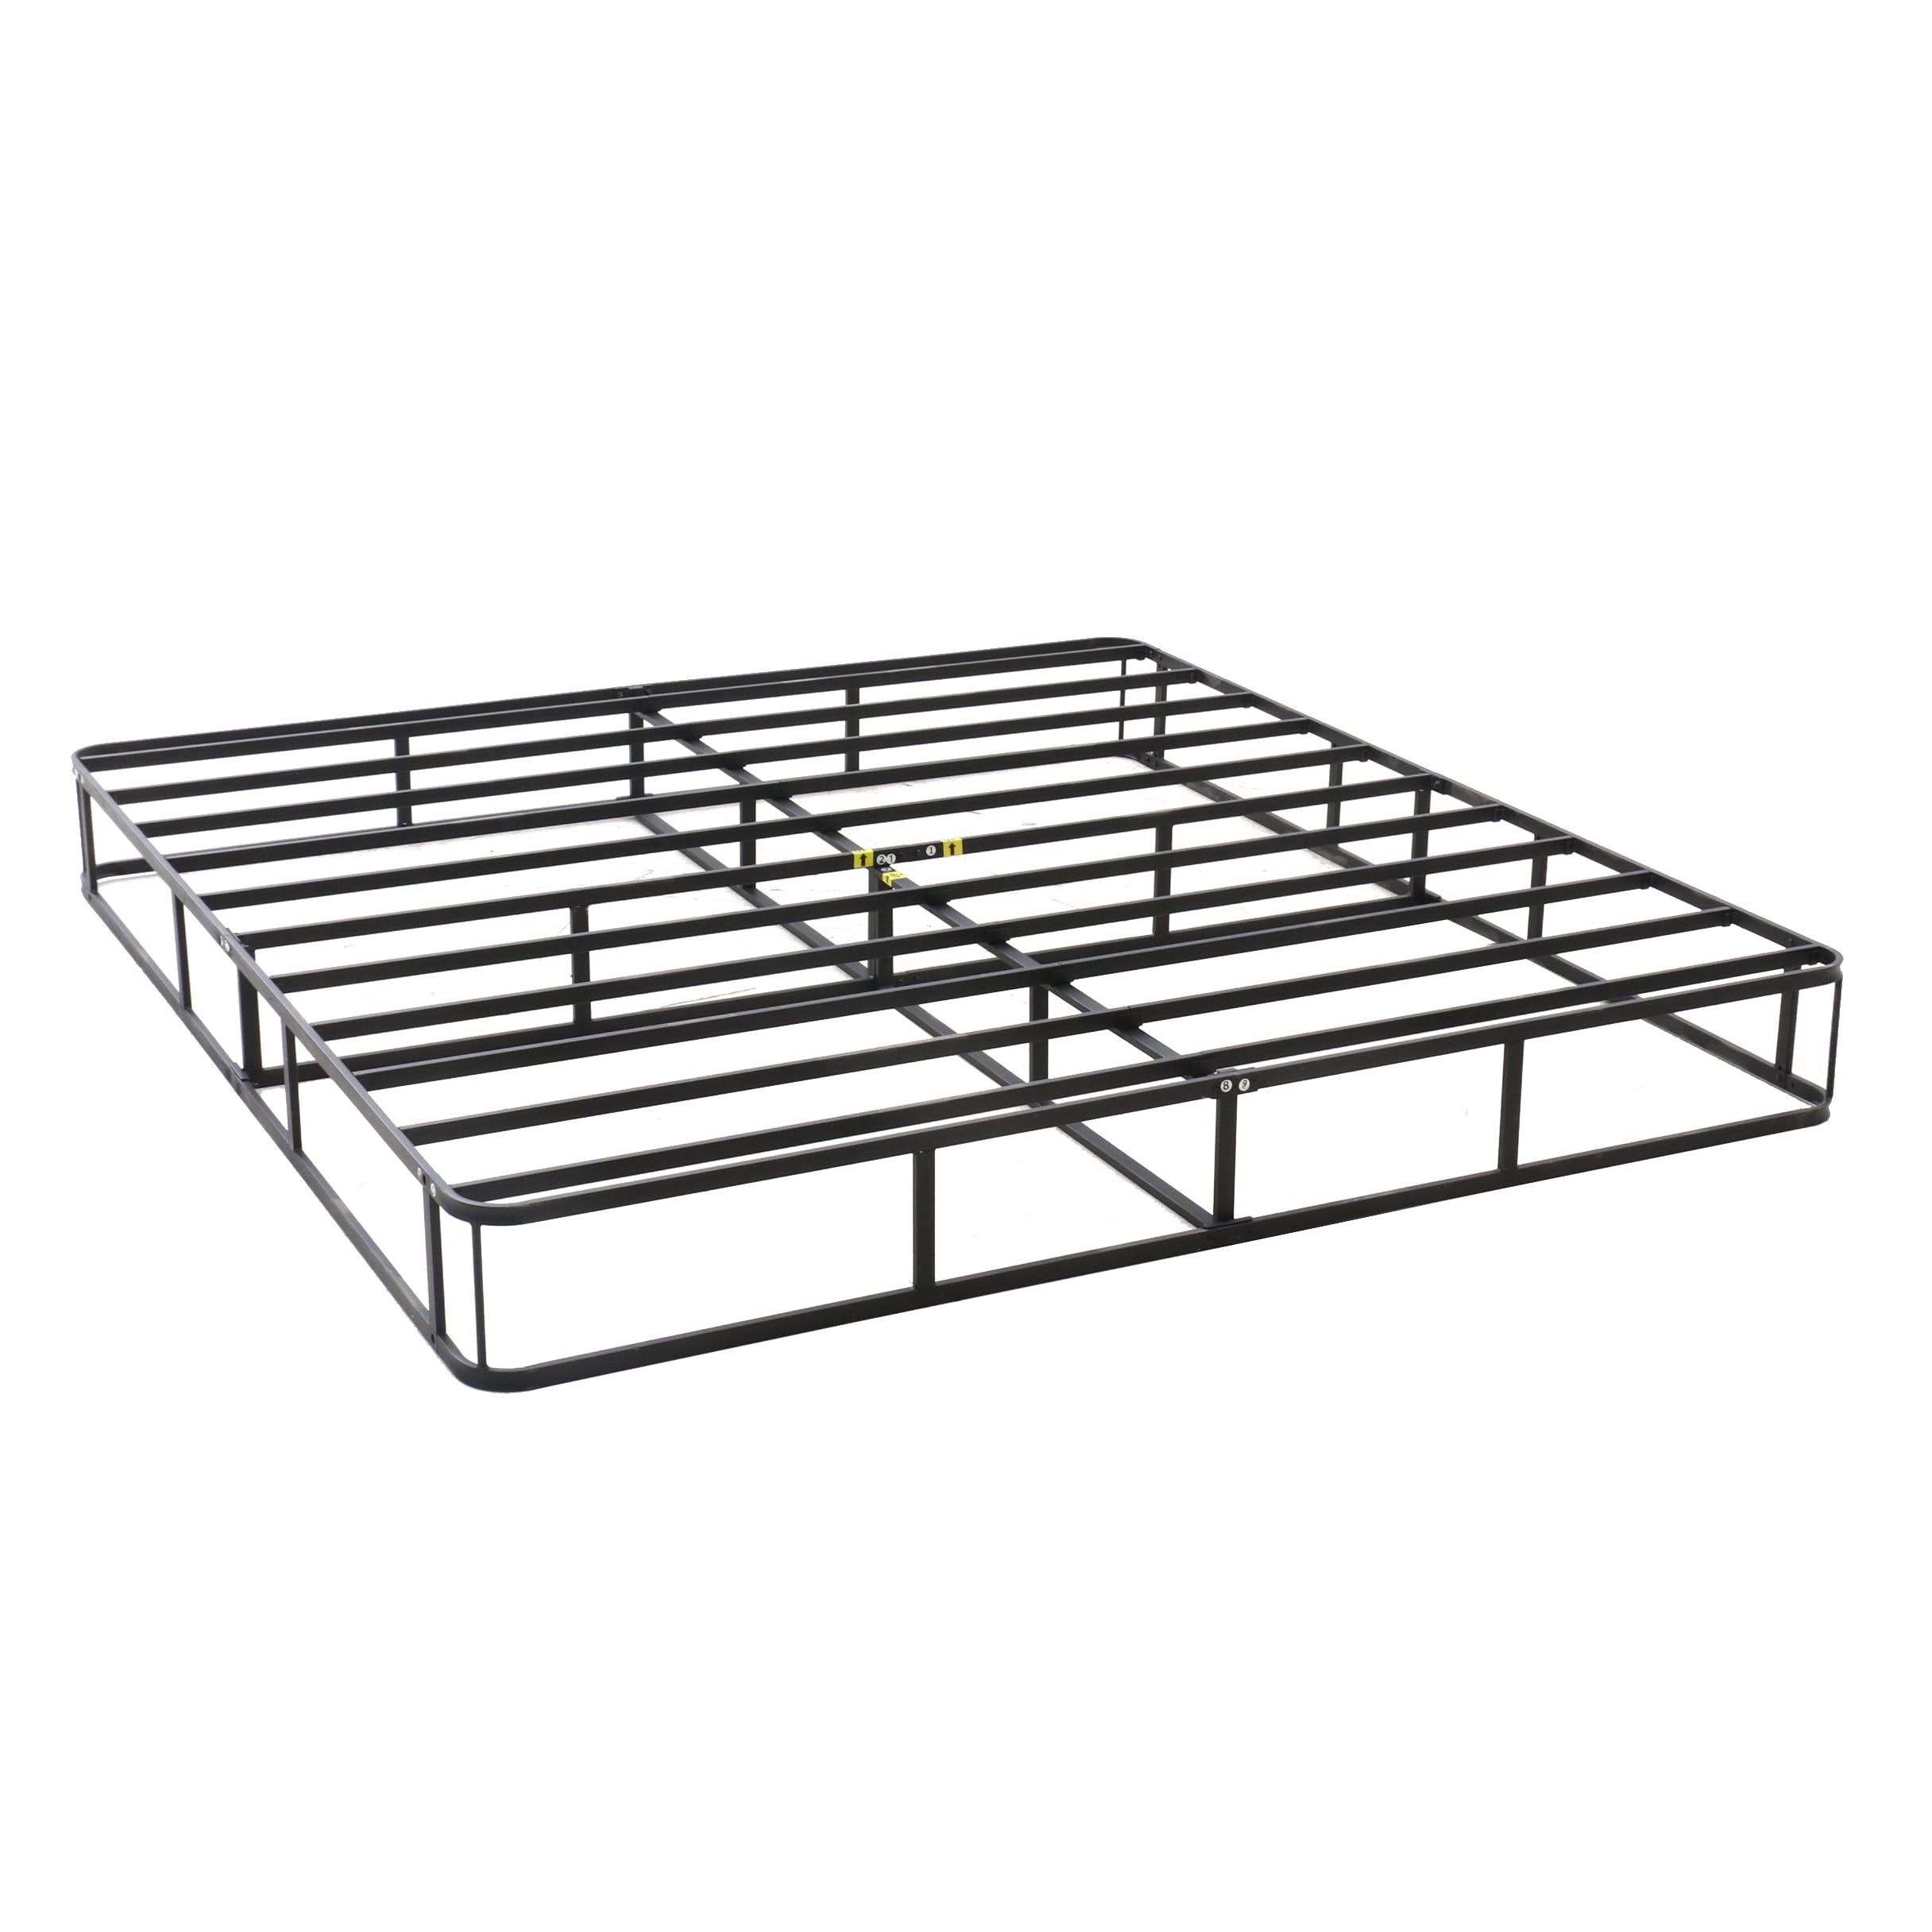 Contemporary Metal King Size Bed Frame in Black